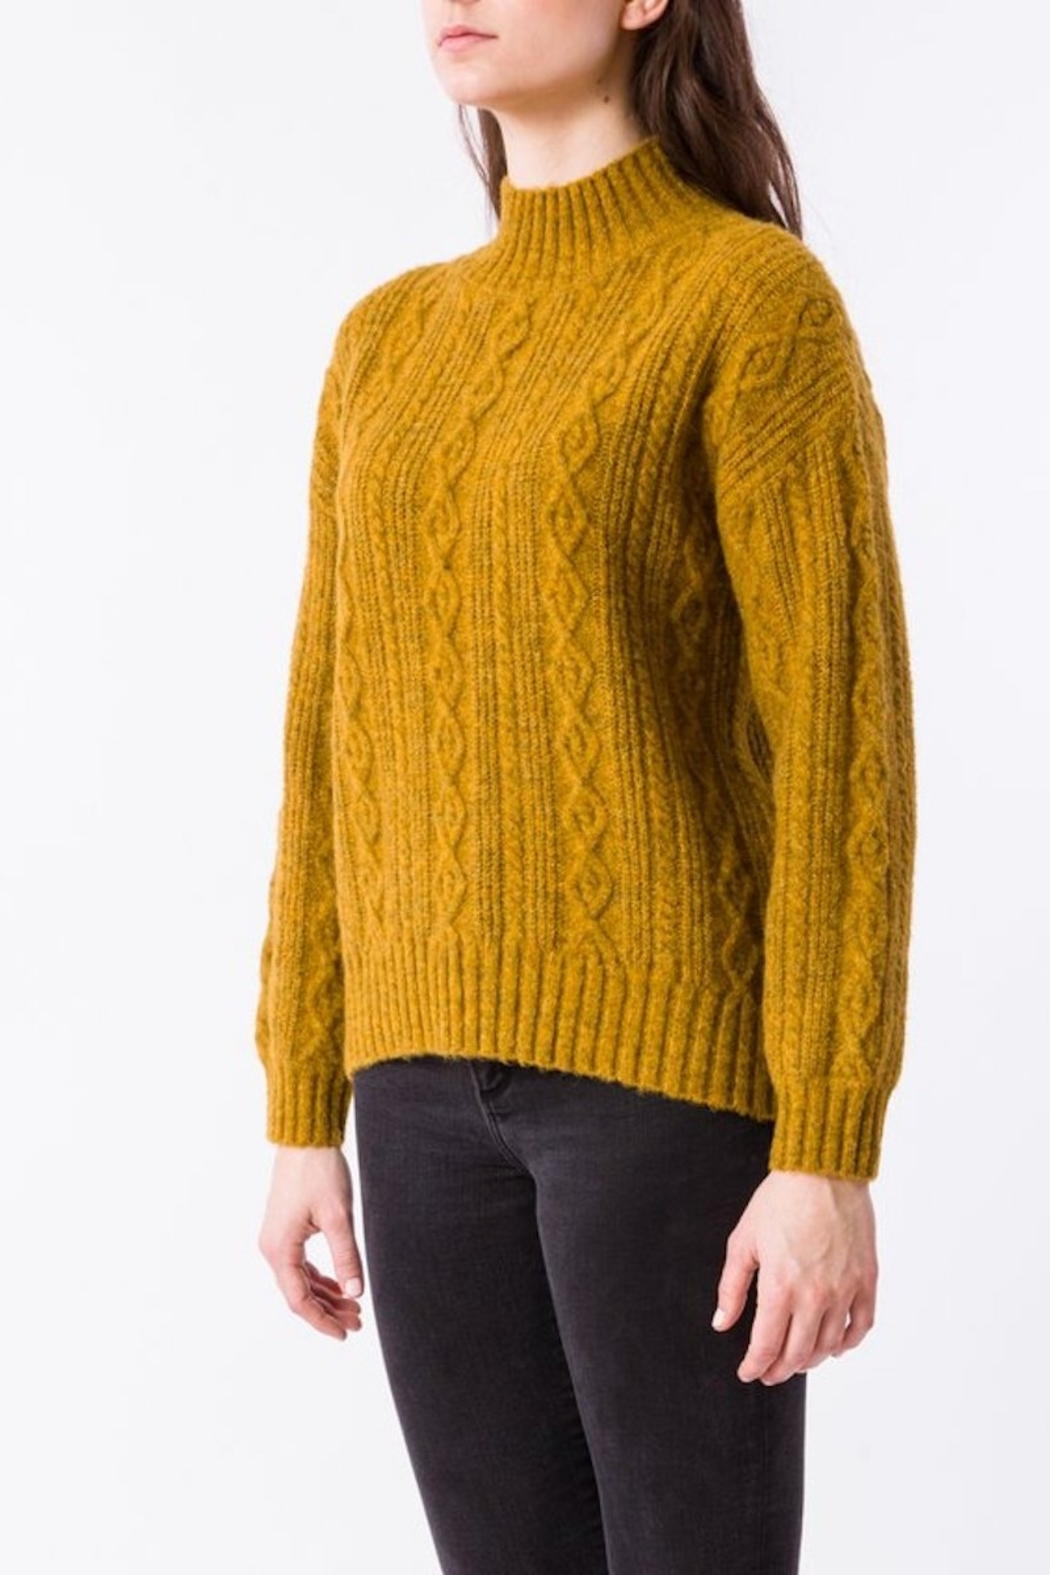 Kerisma Spice Cable-Knit Sweater - Side Cropped Image